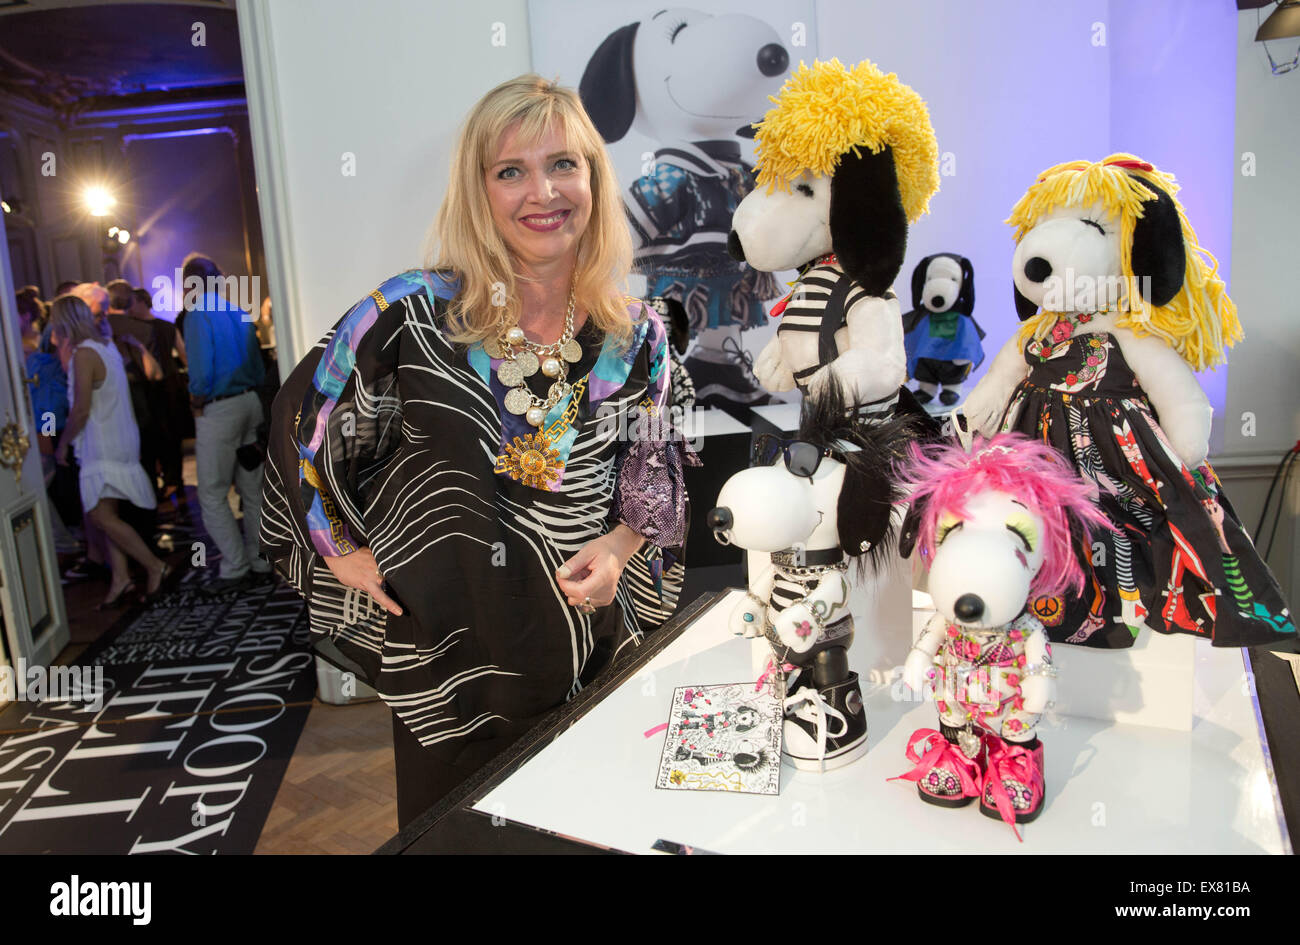 Berlin, Germany. 08th July, 2015. Designer Nanna Kuckuck poses at the exhibition 'Snoopy and Belle in Fashion' - Stock Image